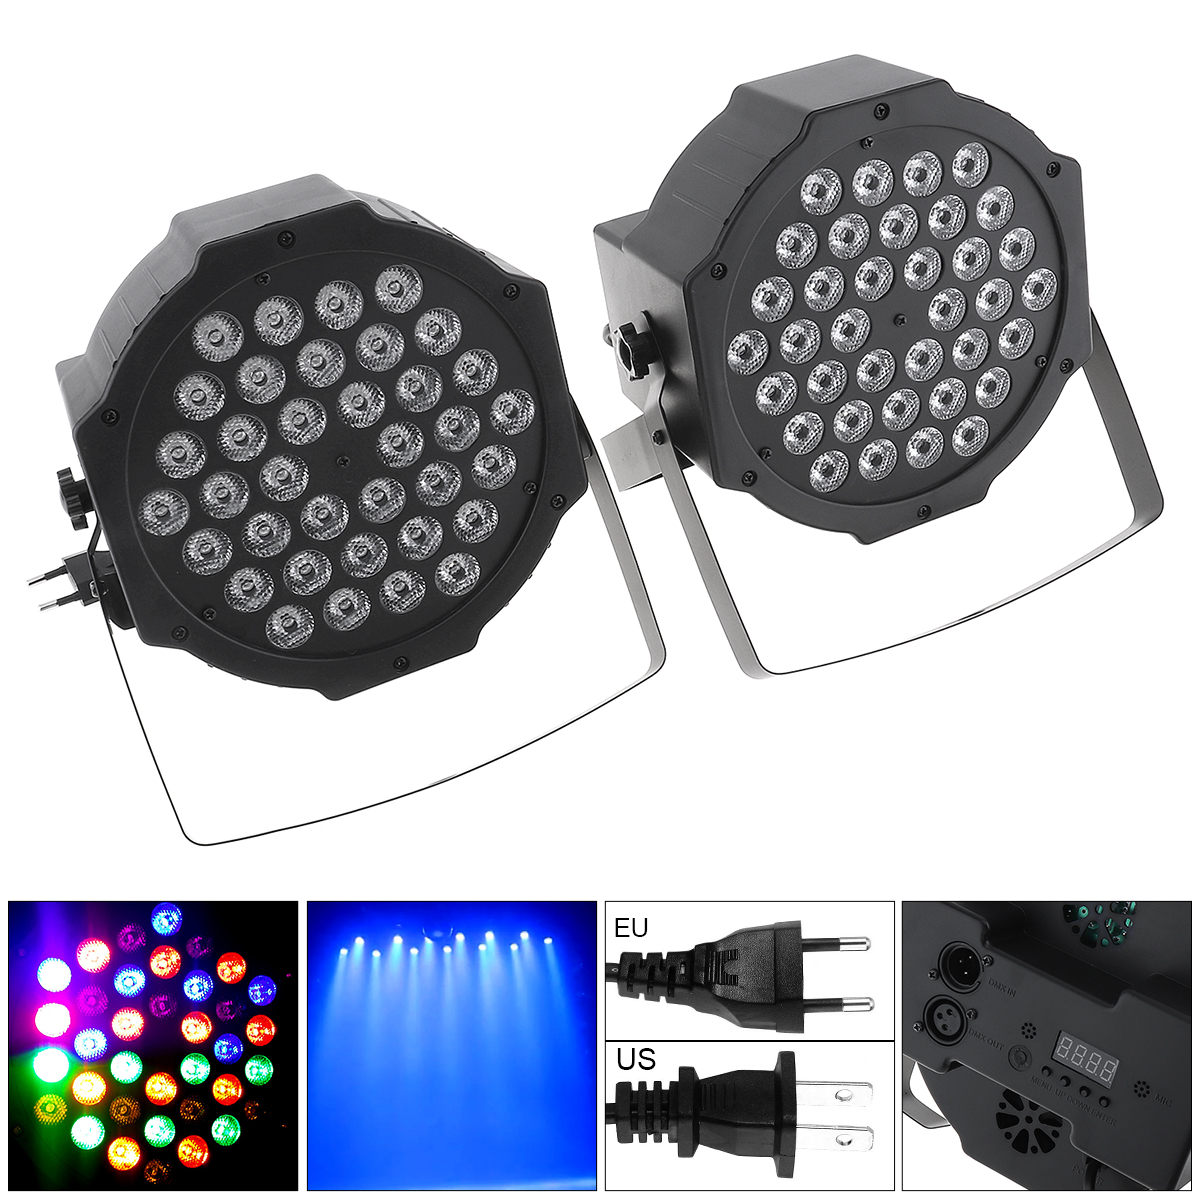 Sale 2pcs 36LED RGB Stroboscope Flash Lamp with Stand and DMX Interface for Disco / Stage / Bar